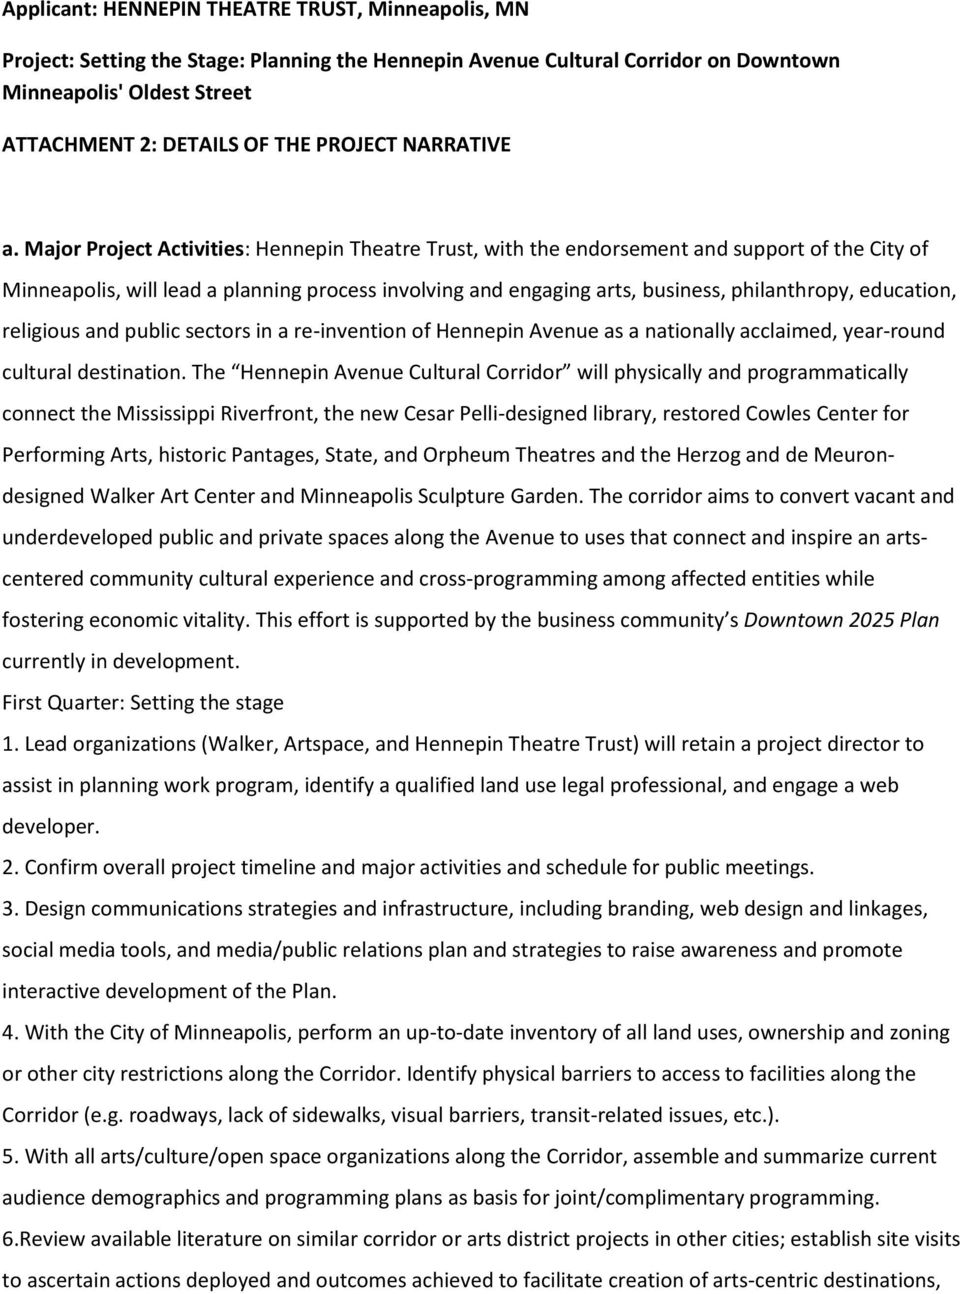 Major Project Activities: Hennepin Theatre Trust, with the endorsement and support of the City of Minneapolis, will lead a planning process involving and engaging arts, business, philanthropy,